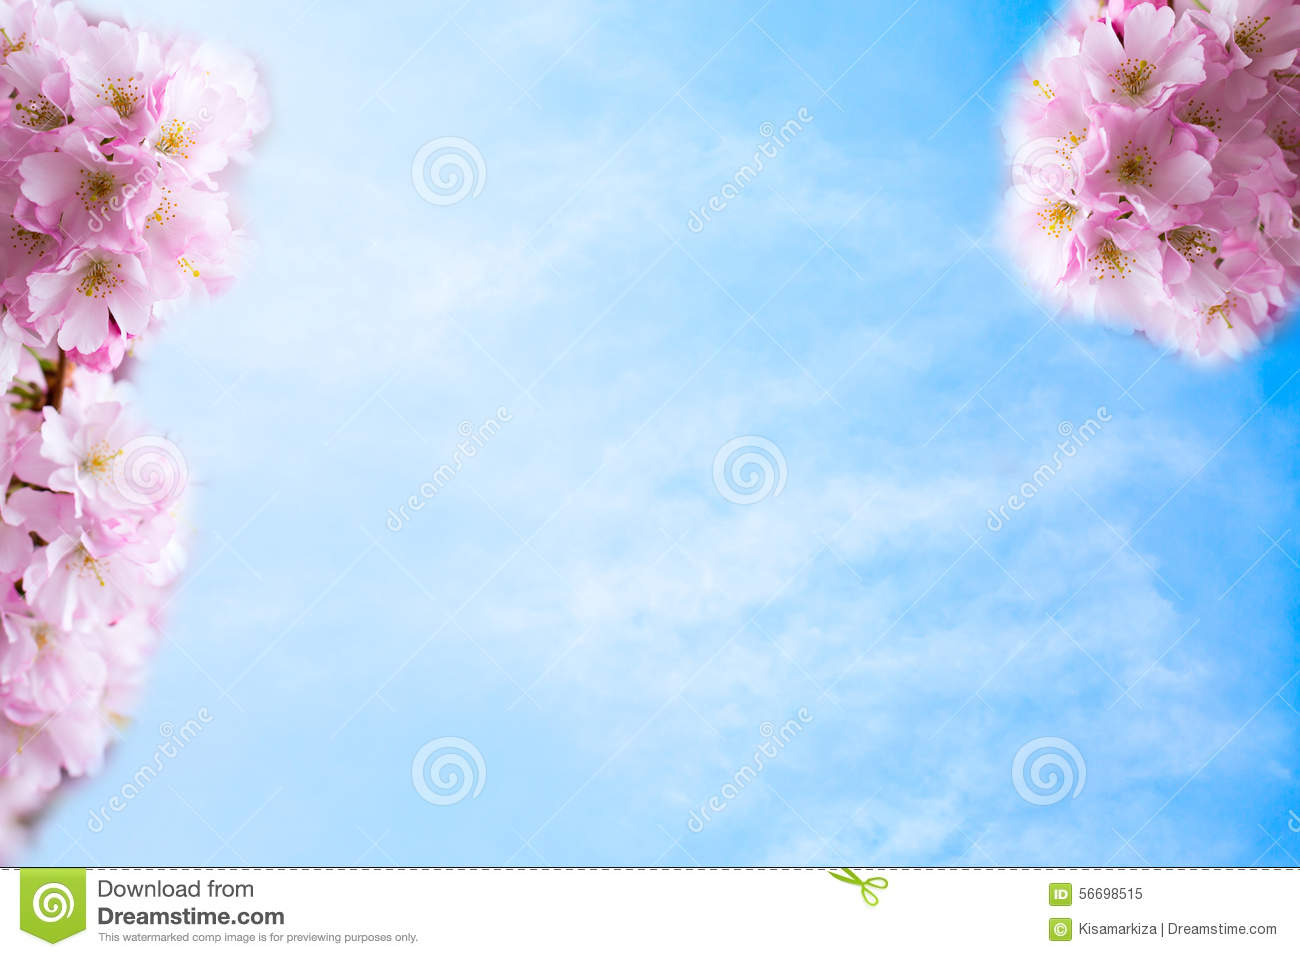 Background with beautiful pink cherry blossom or sakura flowers on background beautiful blossom blue cherry cloudy flower fluffy pink sakura dhlflorist Images